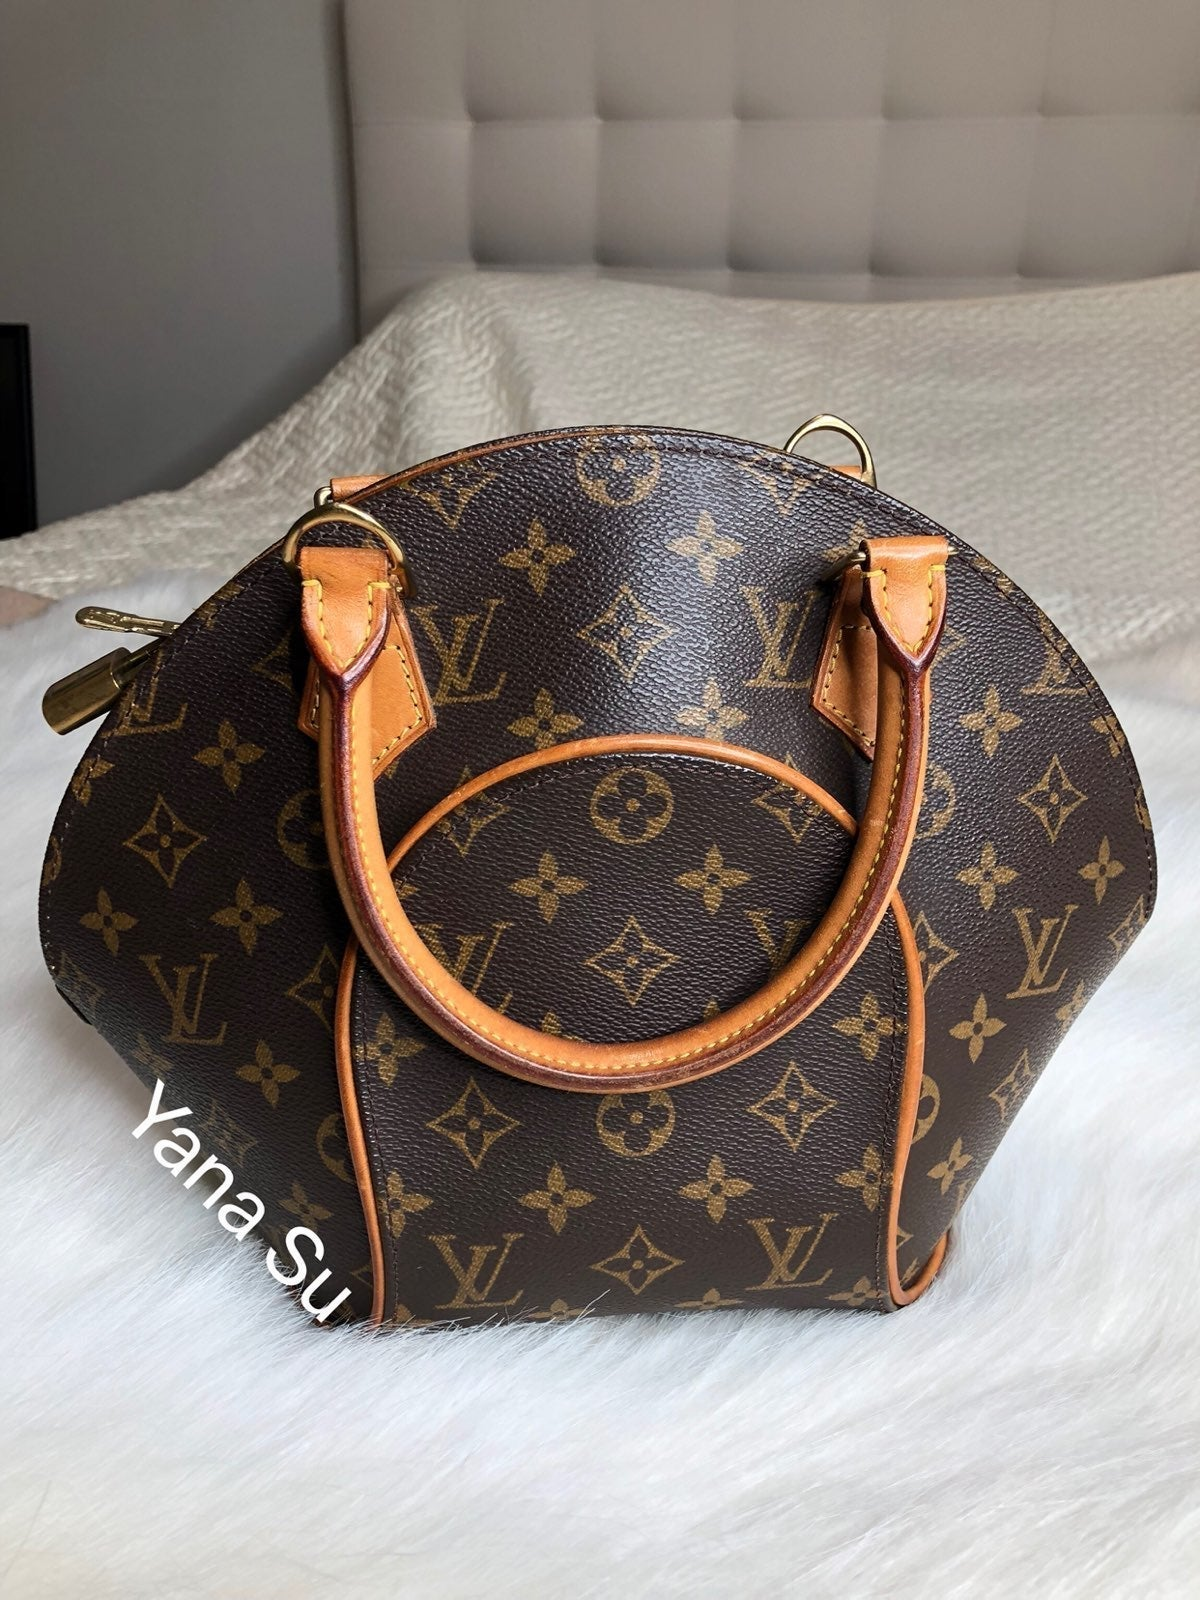 VINTAGE LOUIS VUITTON MONOGRAM ELLIPSE